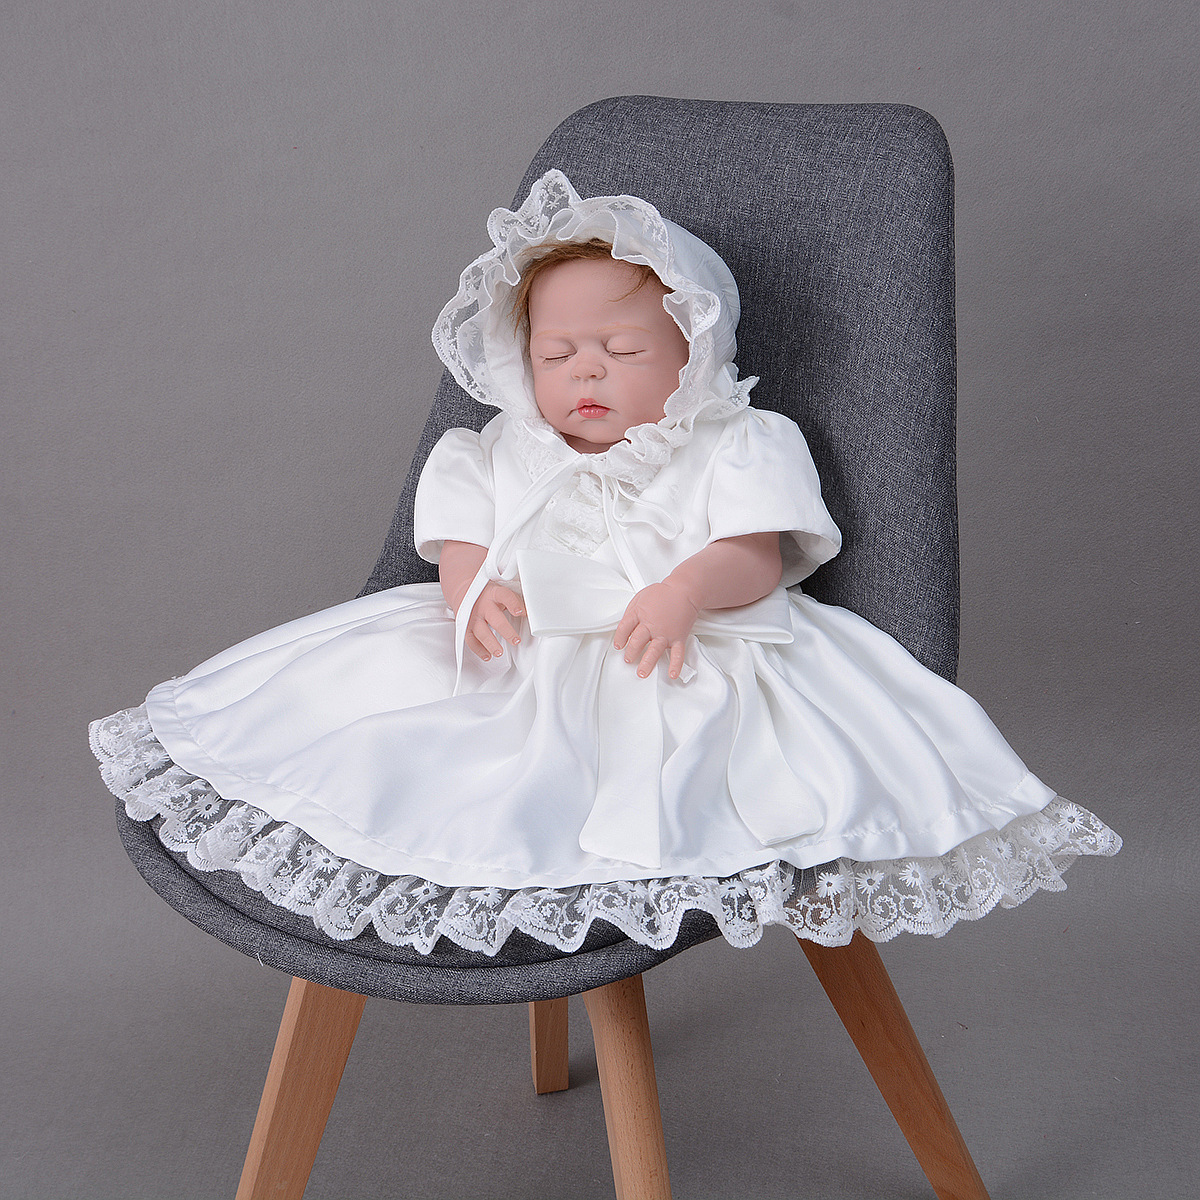 Baby Girl Baptism Clothes Birthday Party 0-24 Month Christening Dress With Hat